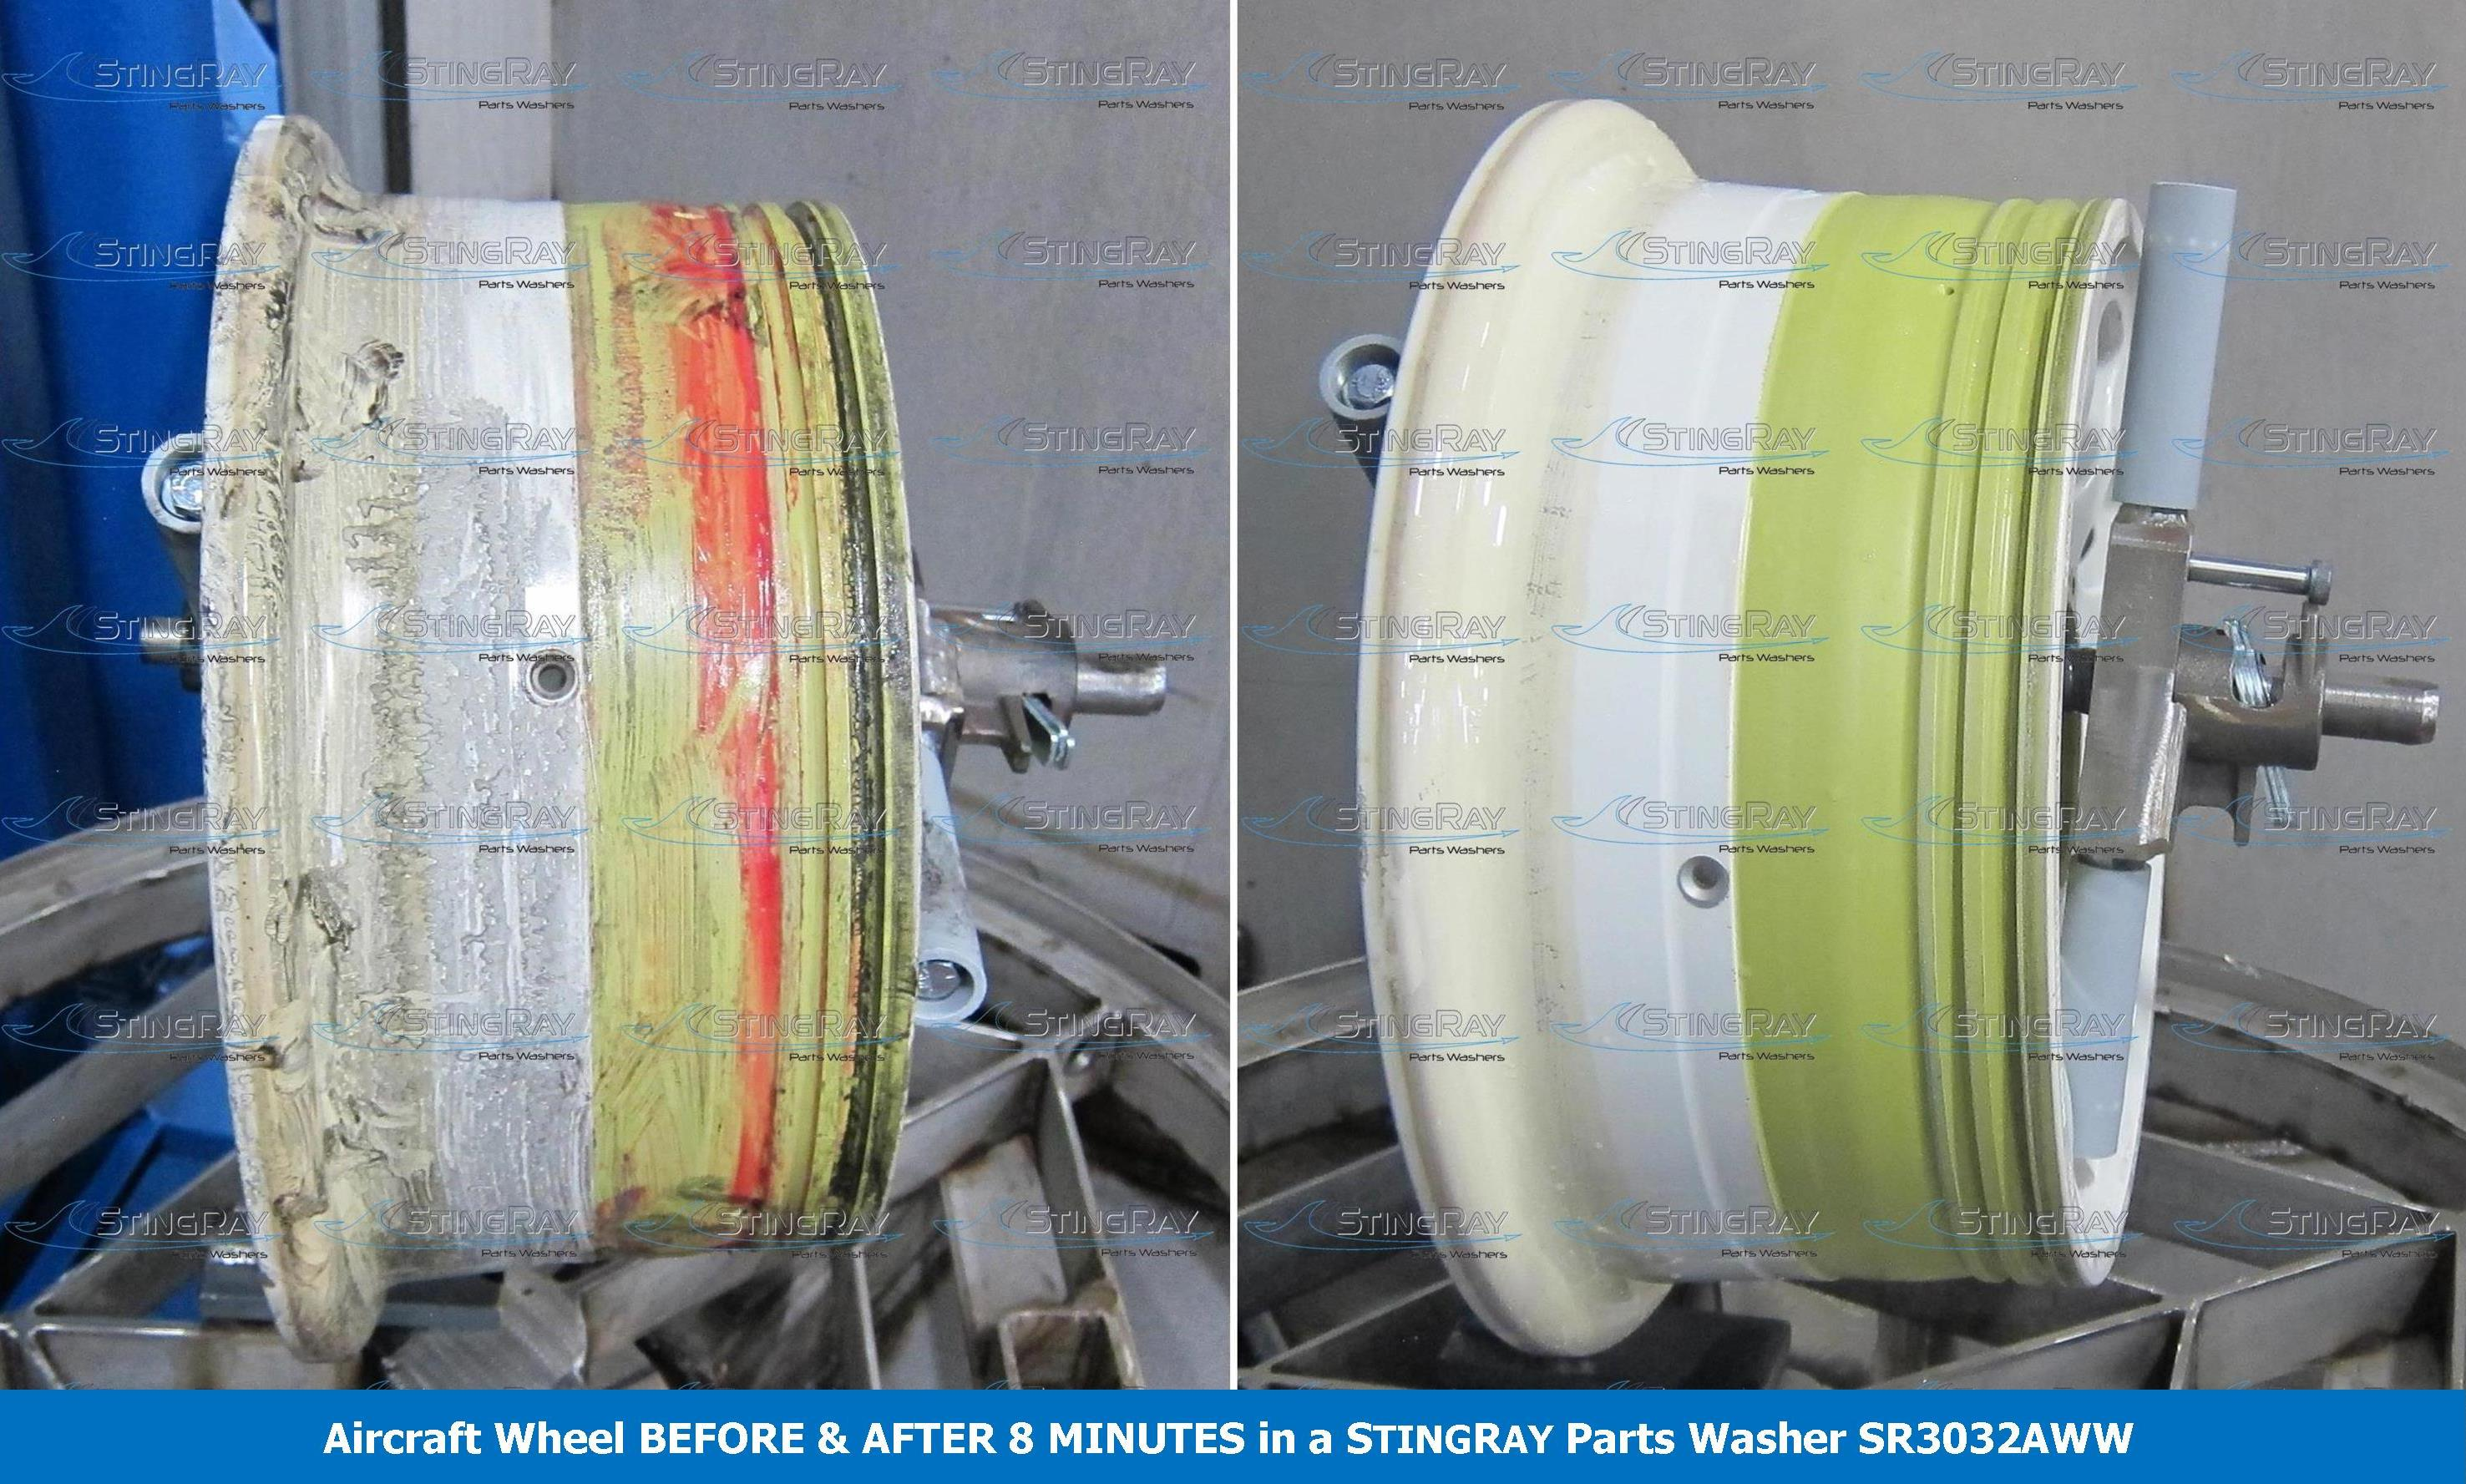 Aircraft Wheel Rubber Bead Cleaning Results in Heavy Duty Parts Washer StingRay